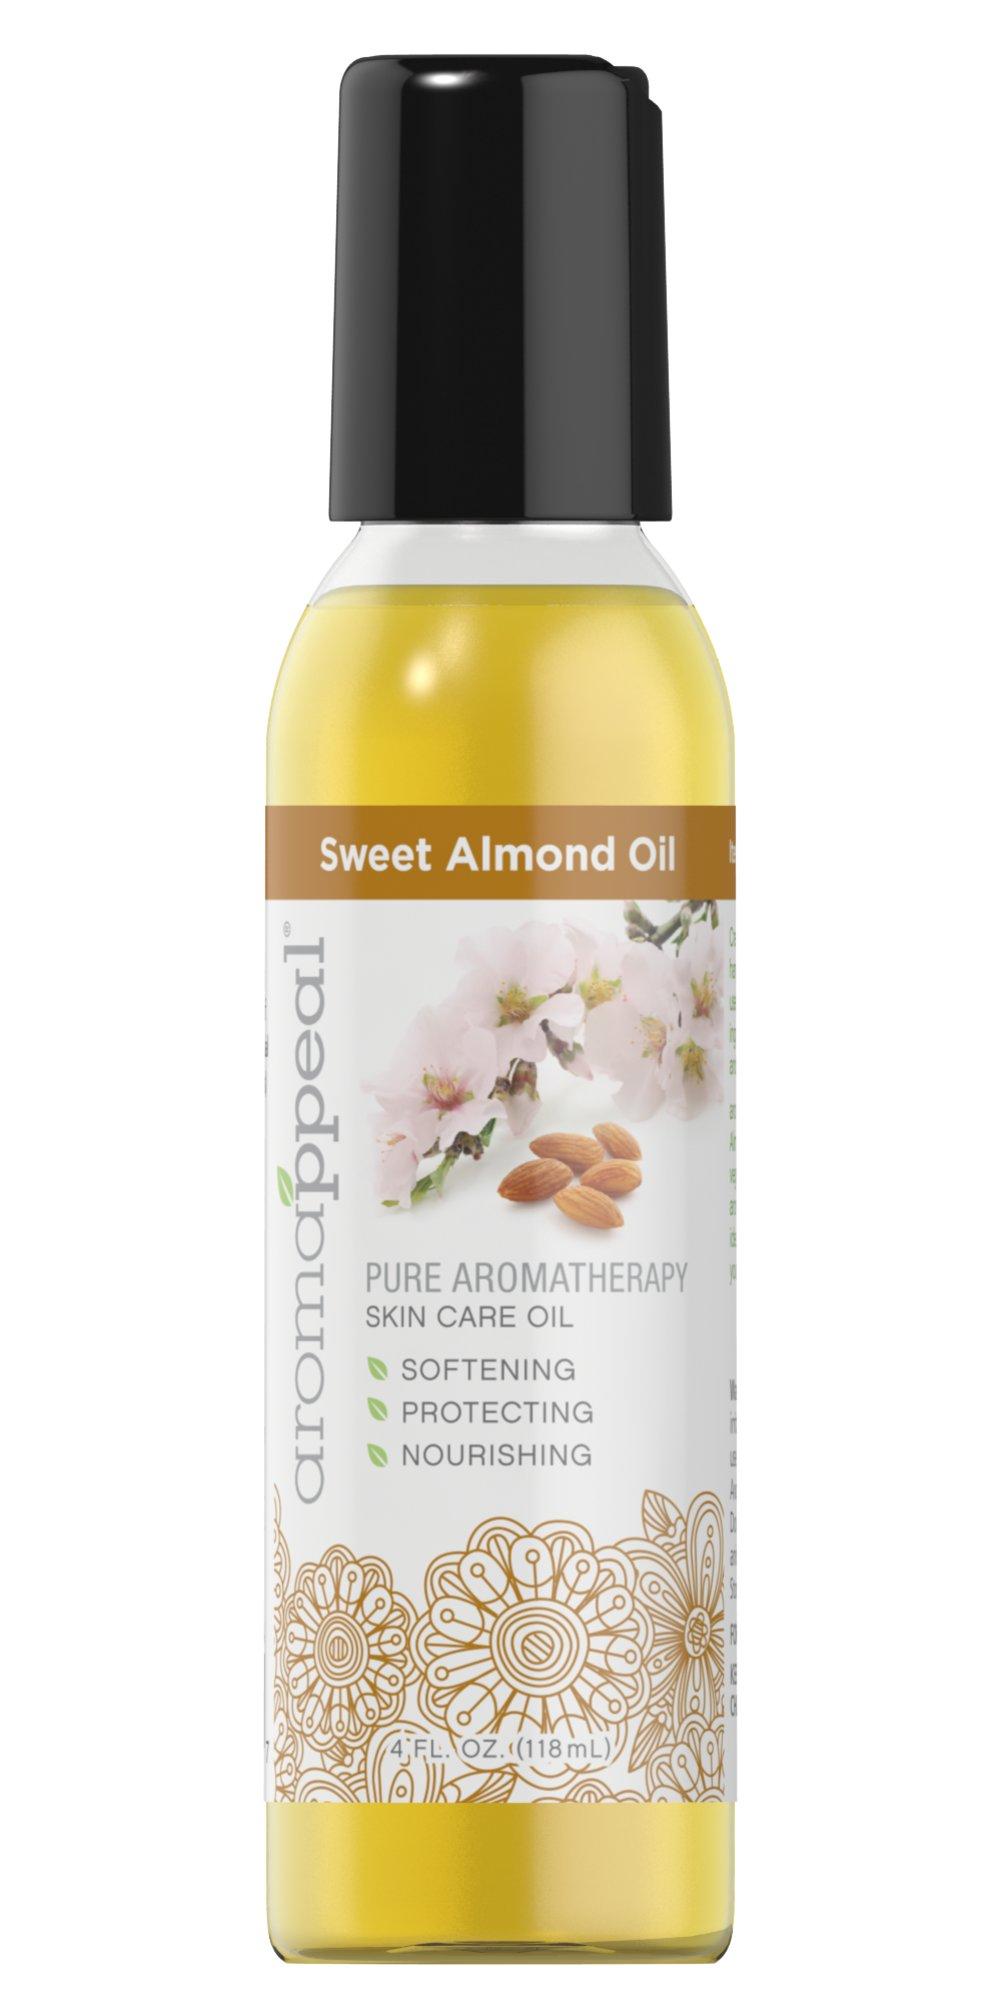 Sweet Almond Oil <p>Created to bring you harmony, Aromappeal™ uses the most balanced ingredients to lift your spirits and soothe your mind.</p><p>Aromappeal™ Sweet Almond Oil is a natural vegetable oil with a neutral aroma. This base makes an ideal ingredient to create your own aroma recipe.</p> 4 oz Oil  $7.99